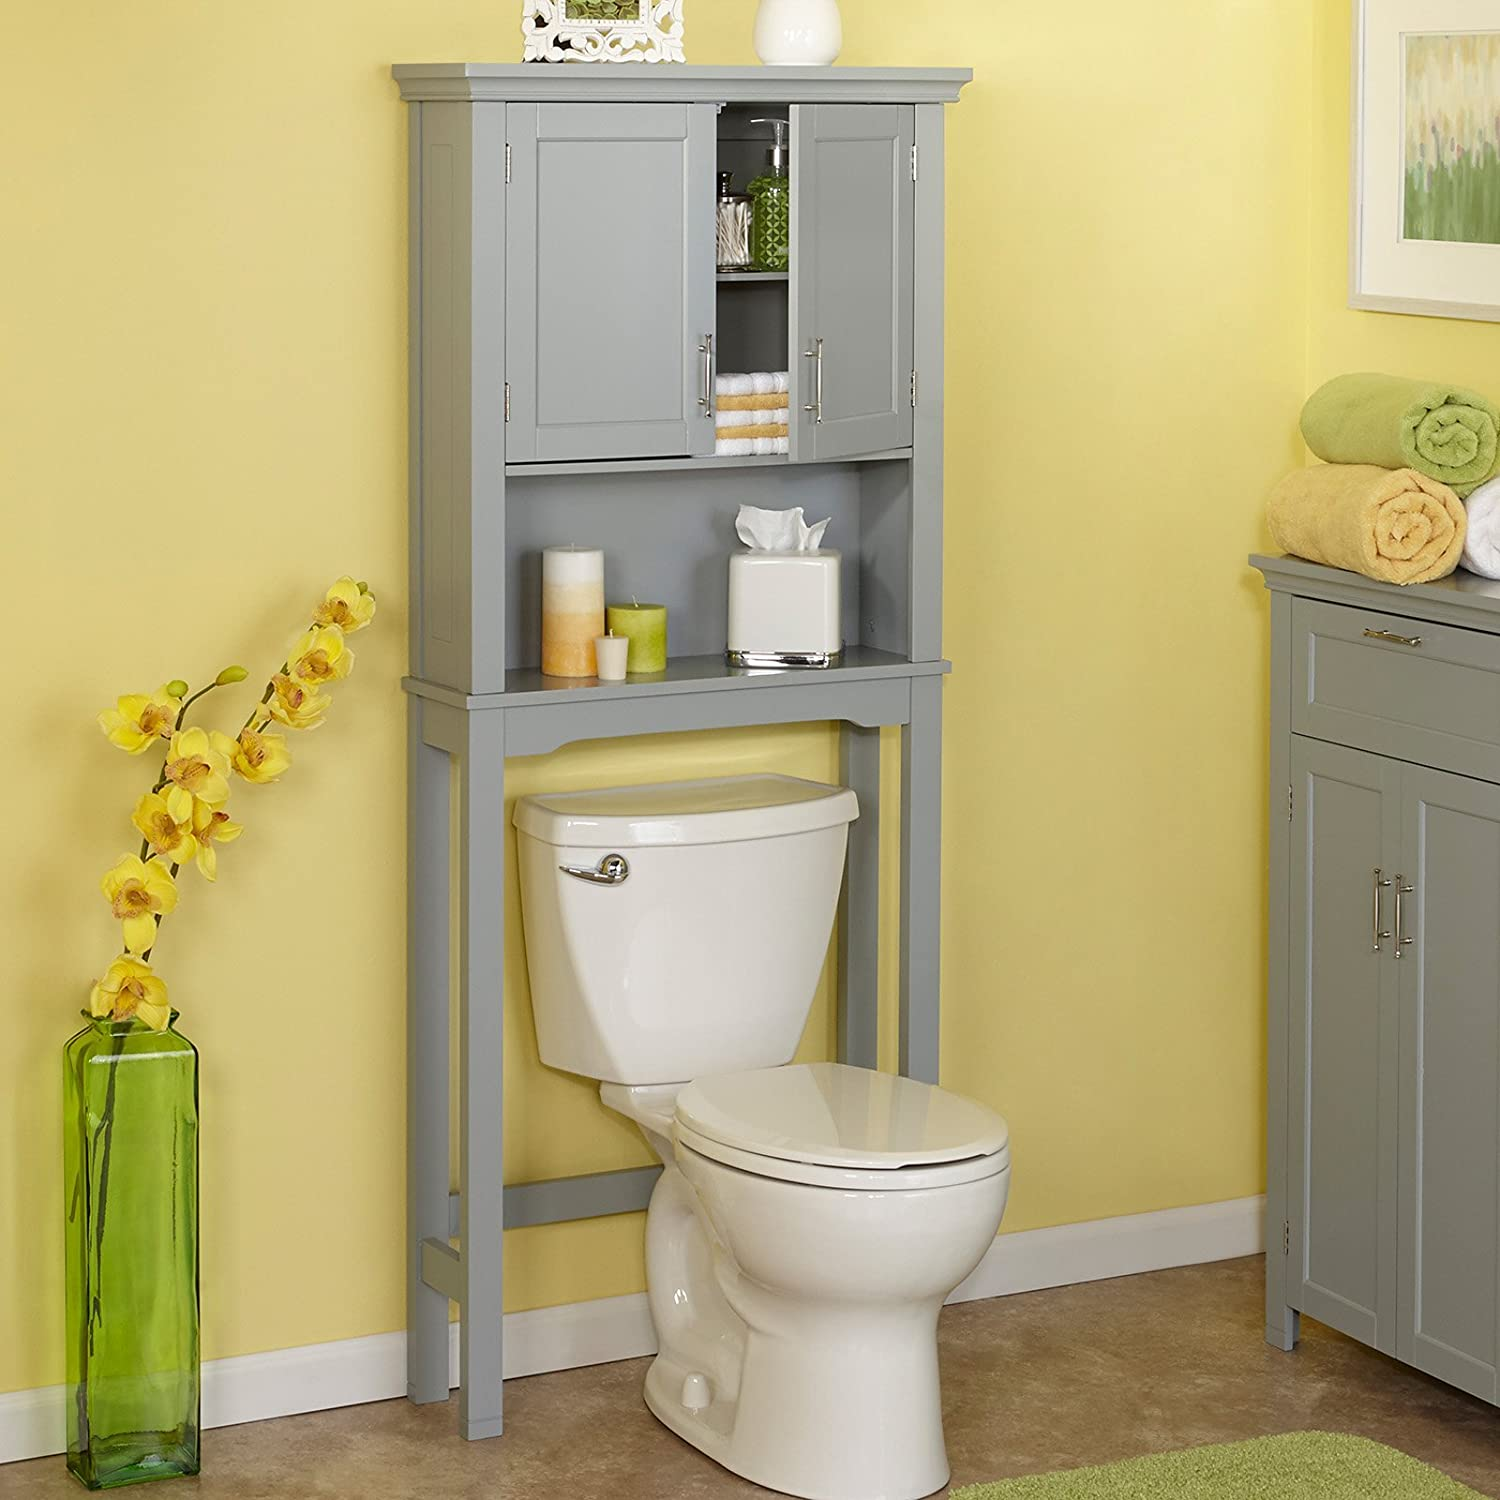 Amazon Spacesaver Over Toilet Cabinet in Gray Home & Kitchen